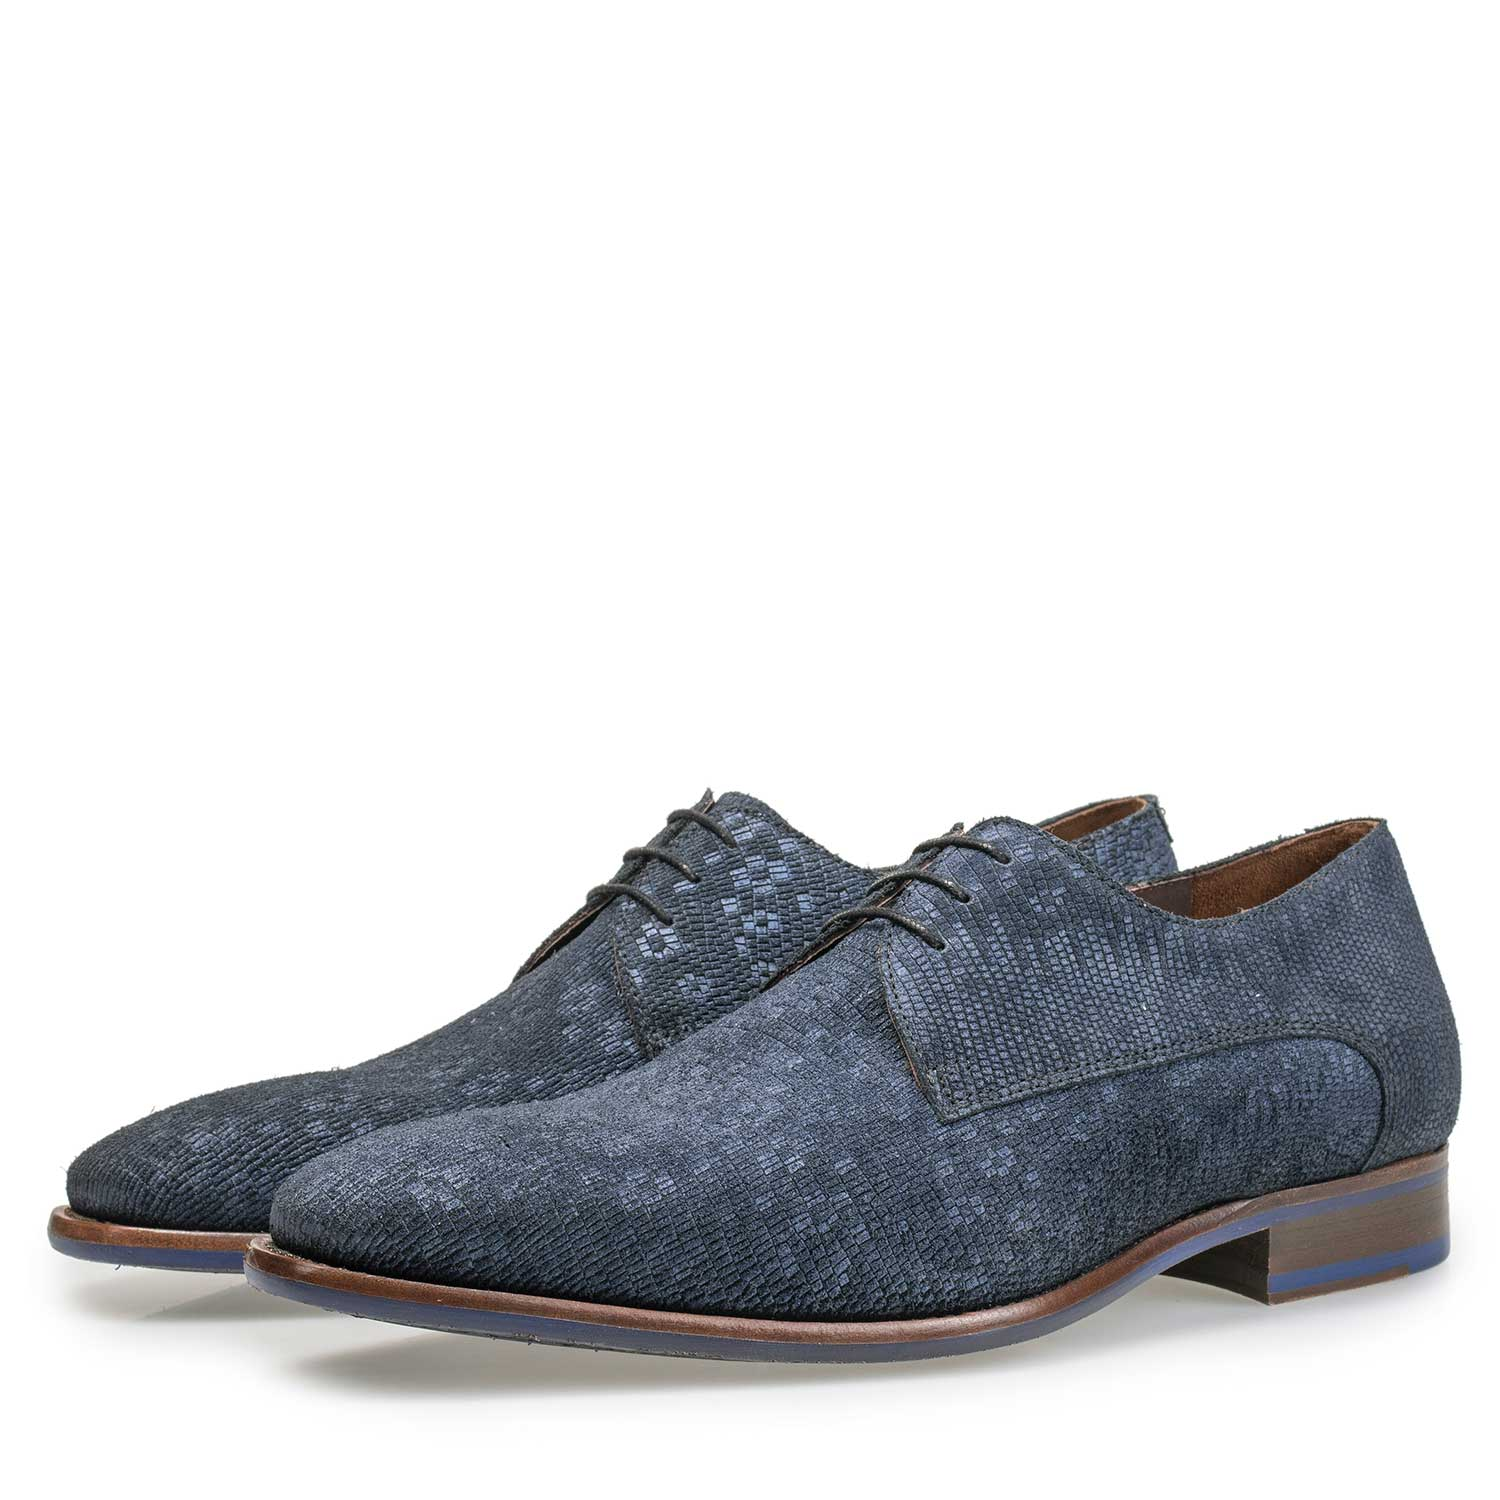 18078/01 - Blue lace shoe with structural pattern